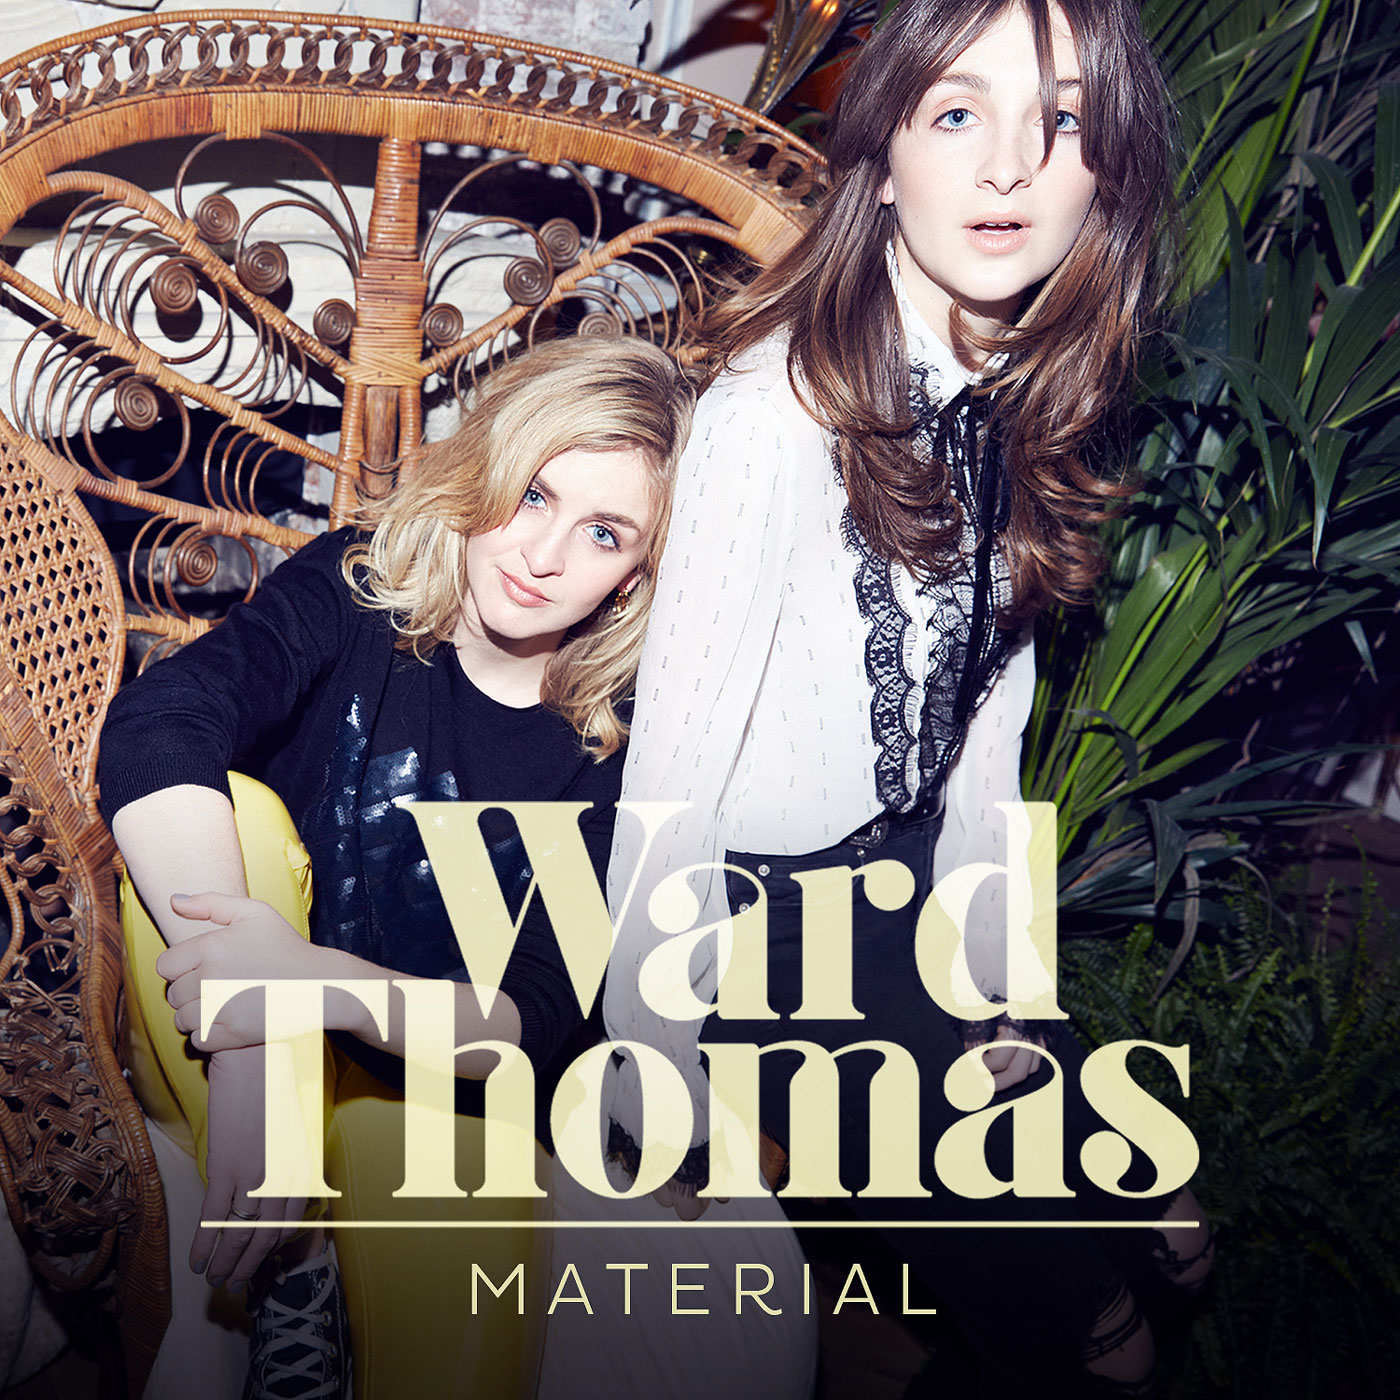 issie-gibbons-fashion-stylist-ward-thomas-material-music-cover